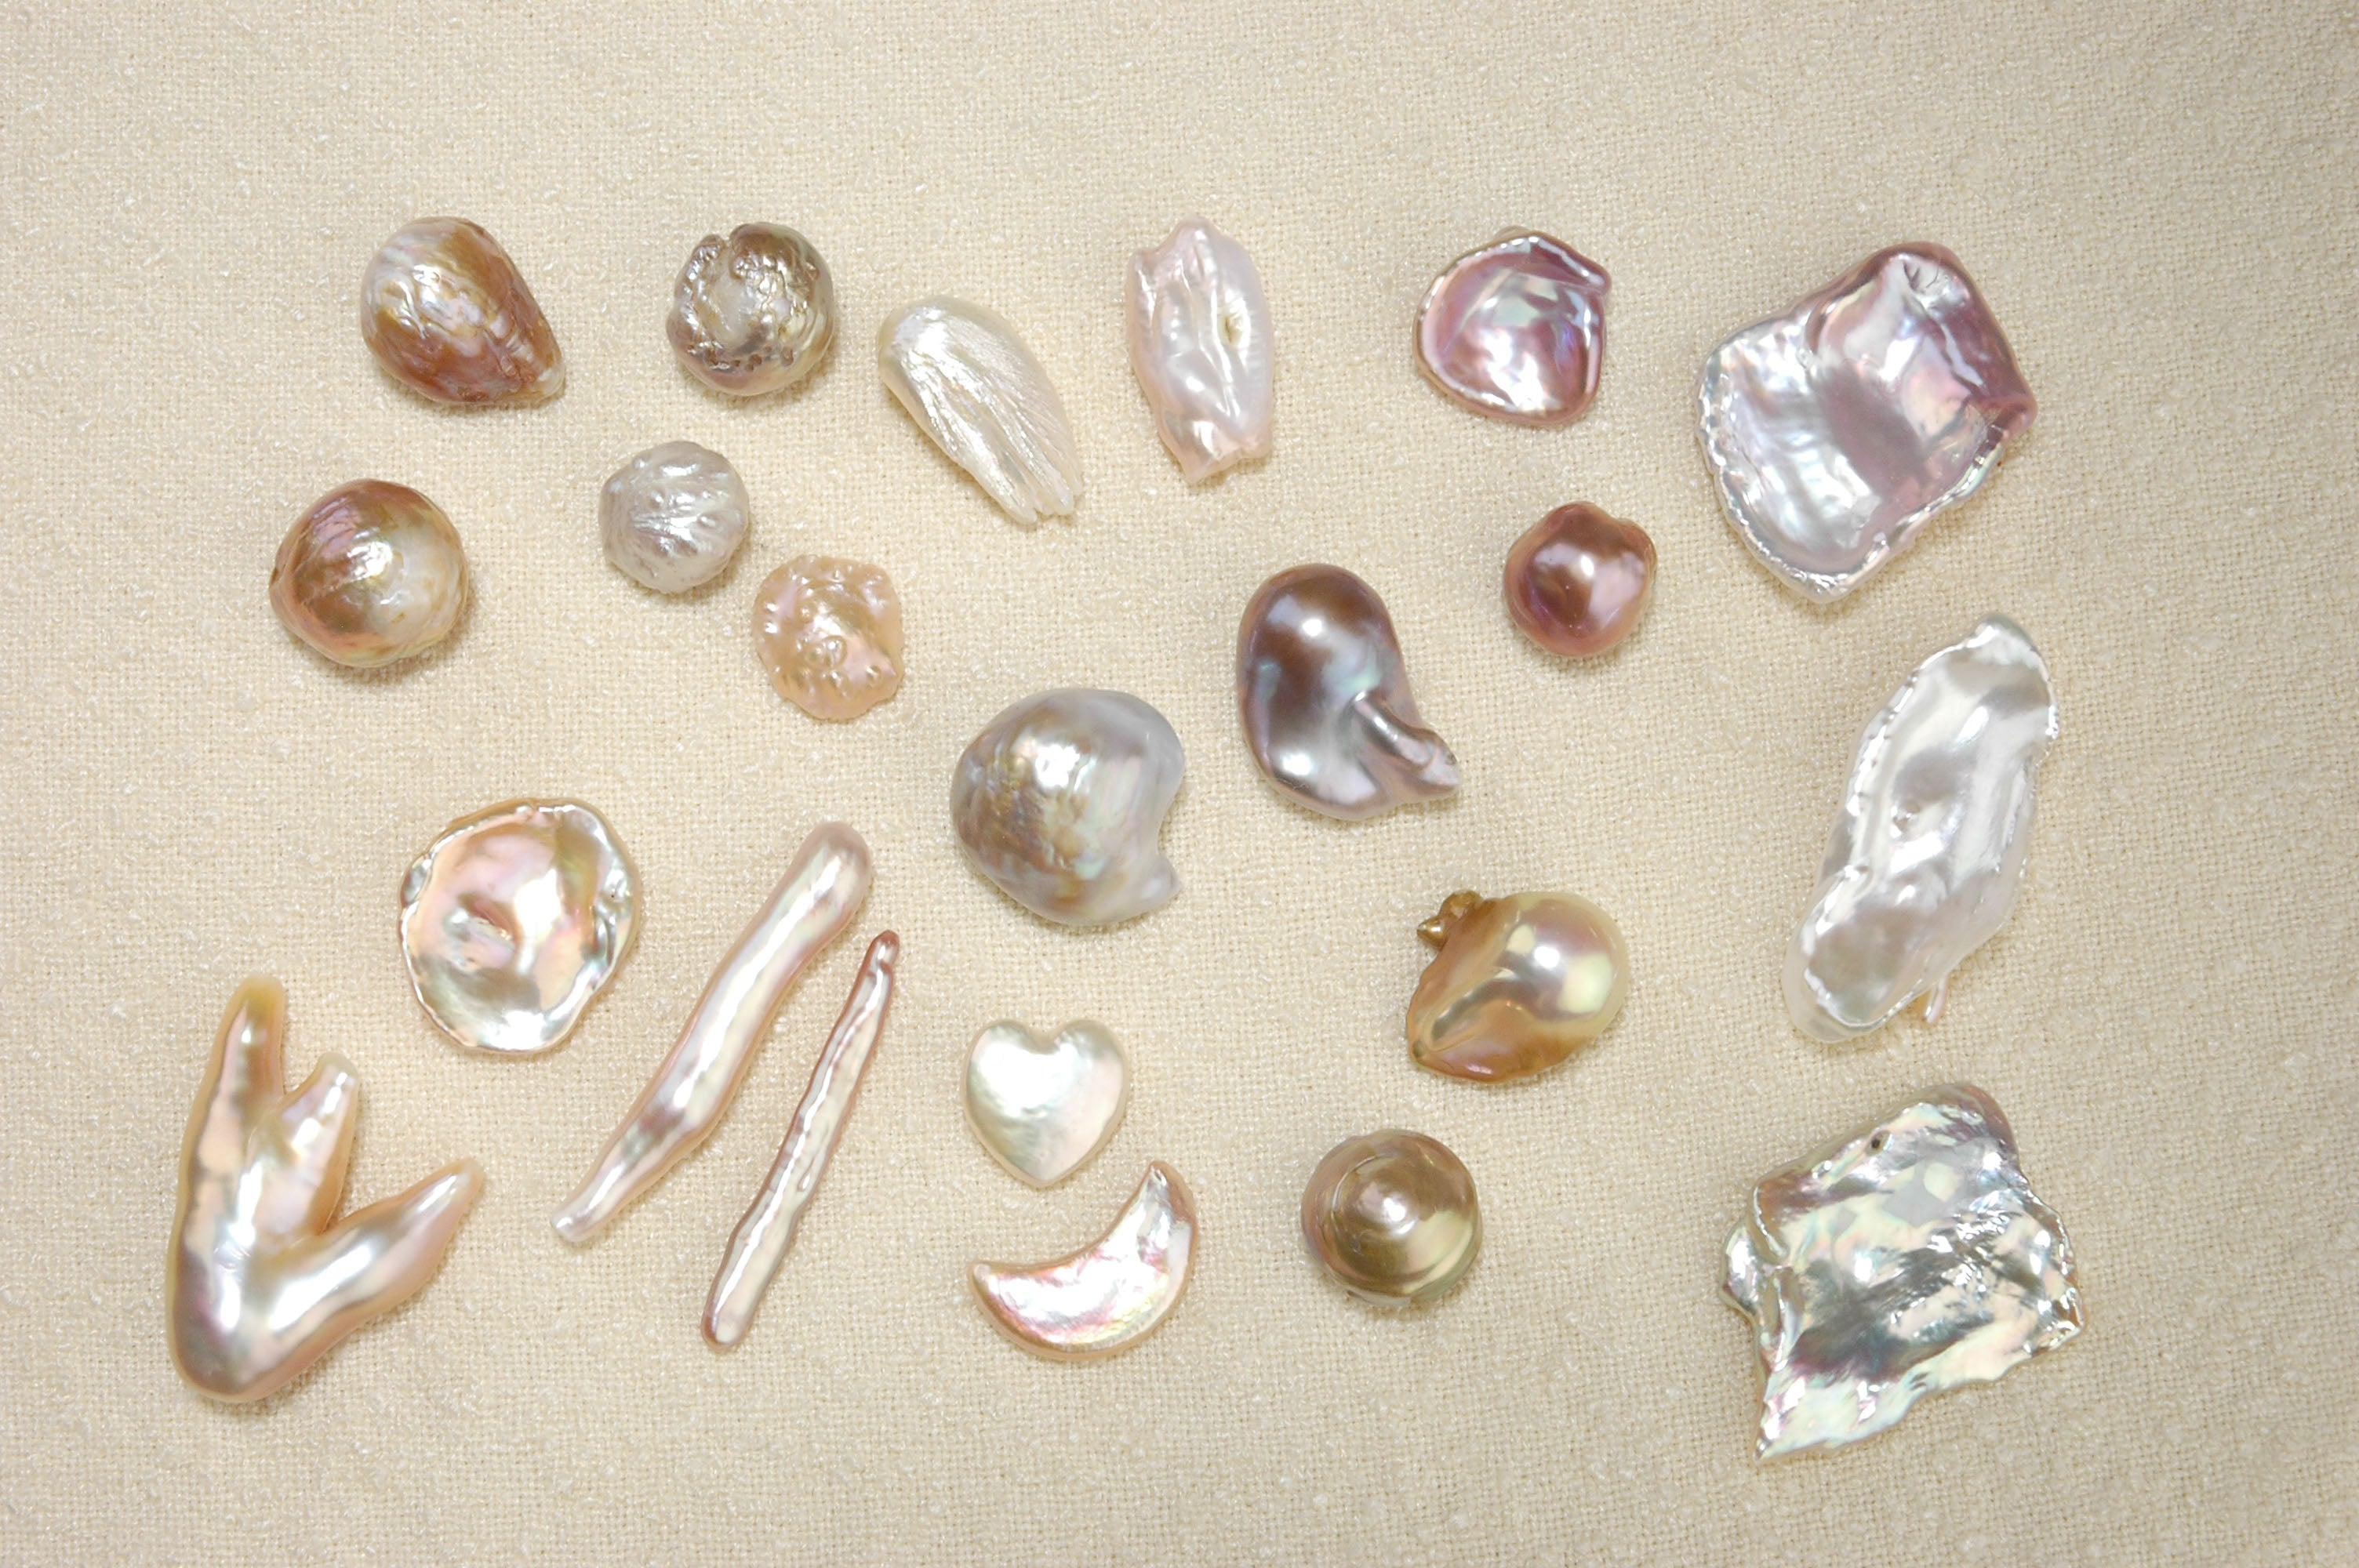 Pearl types